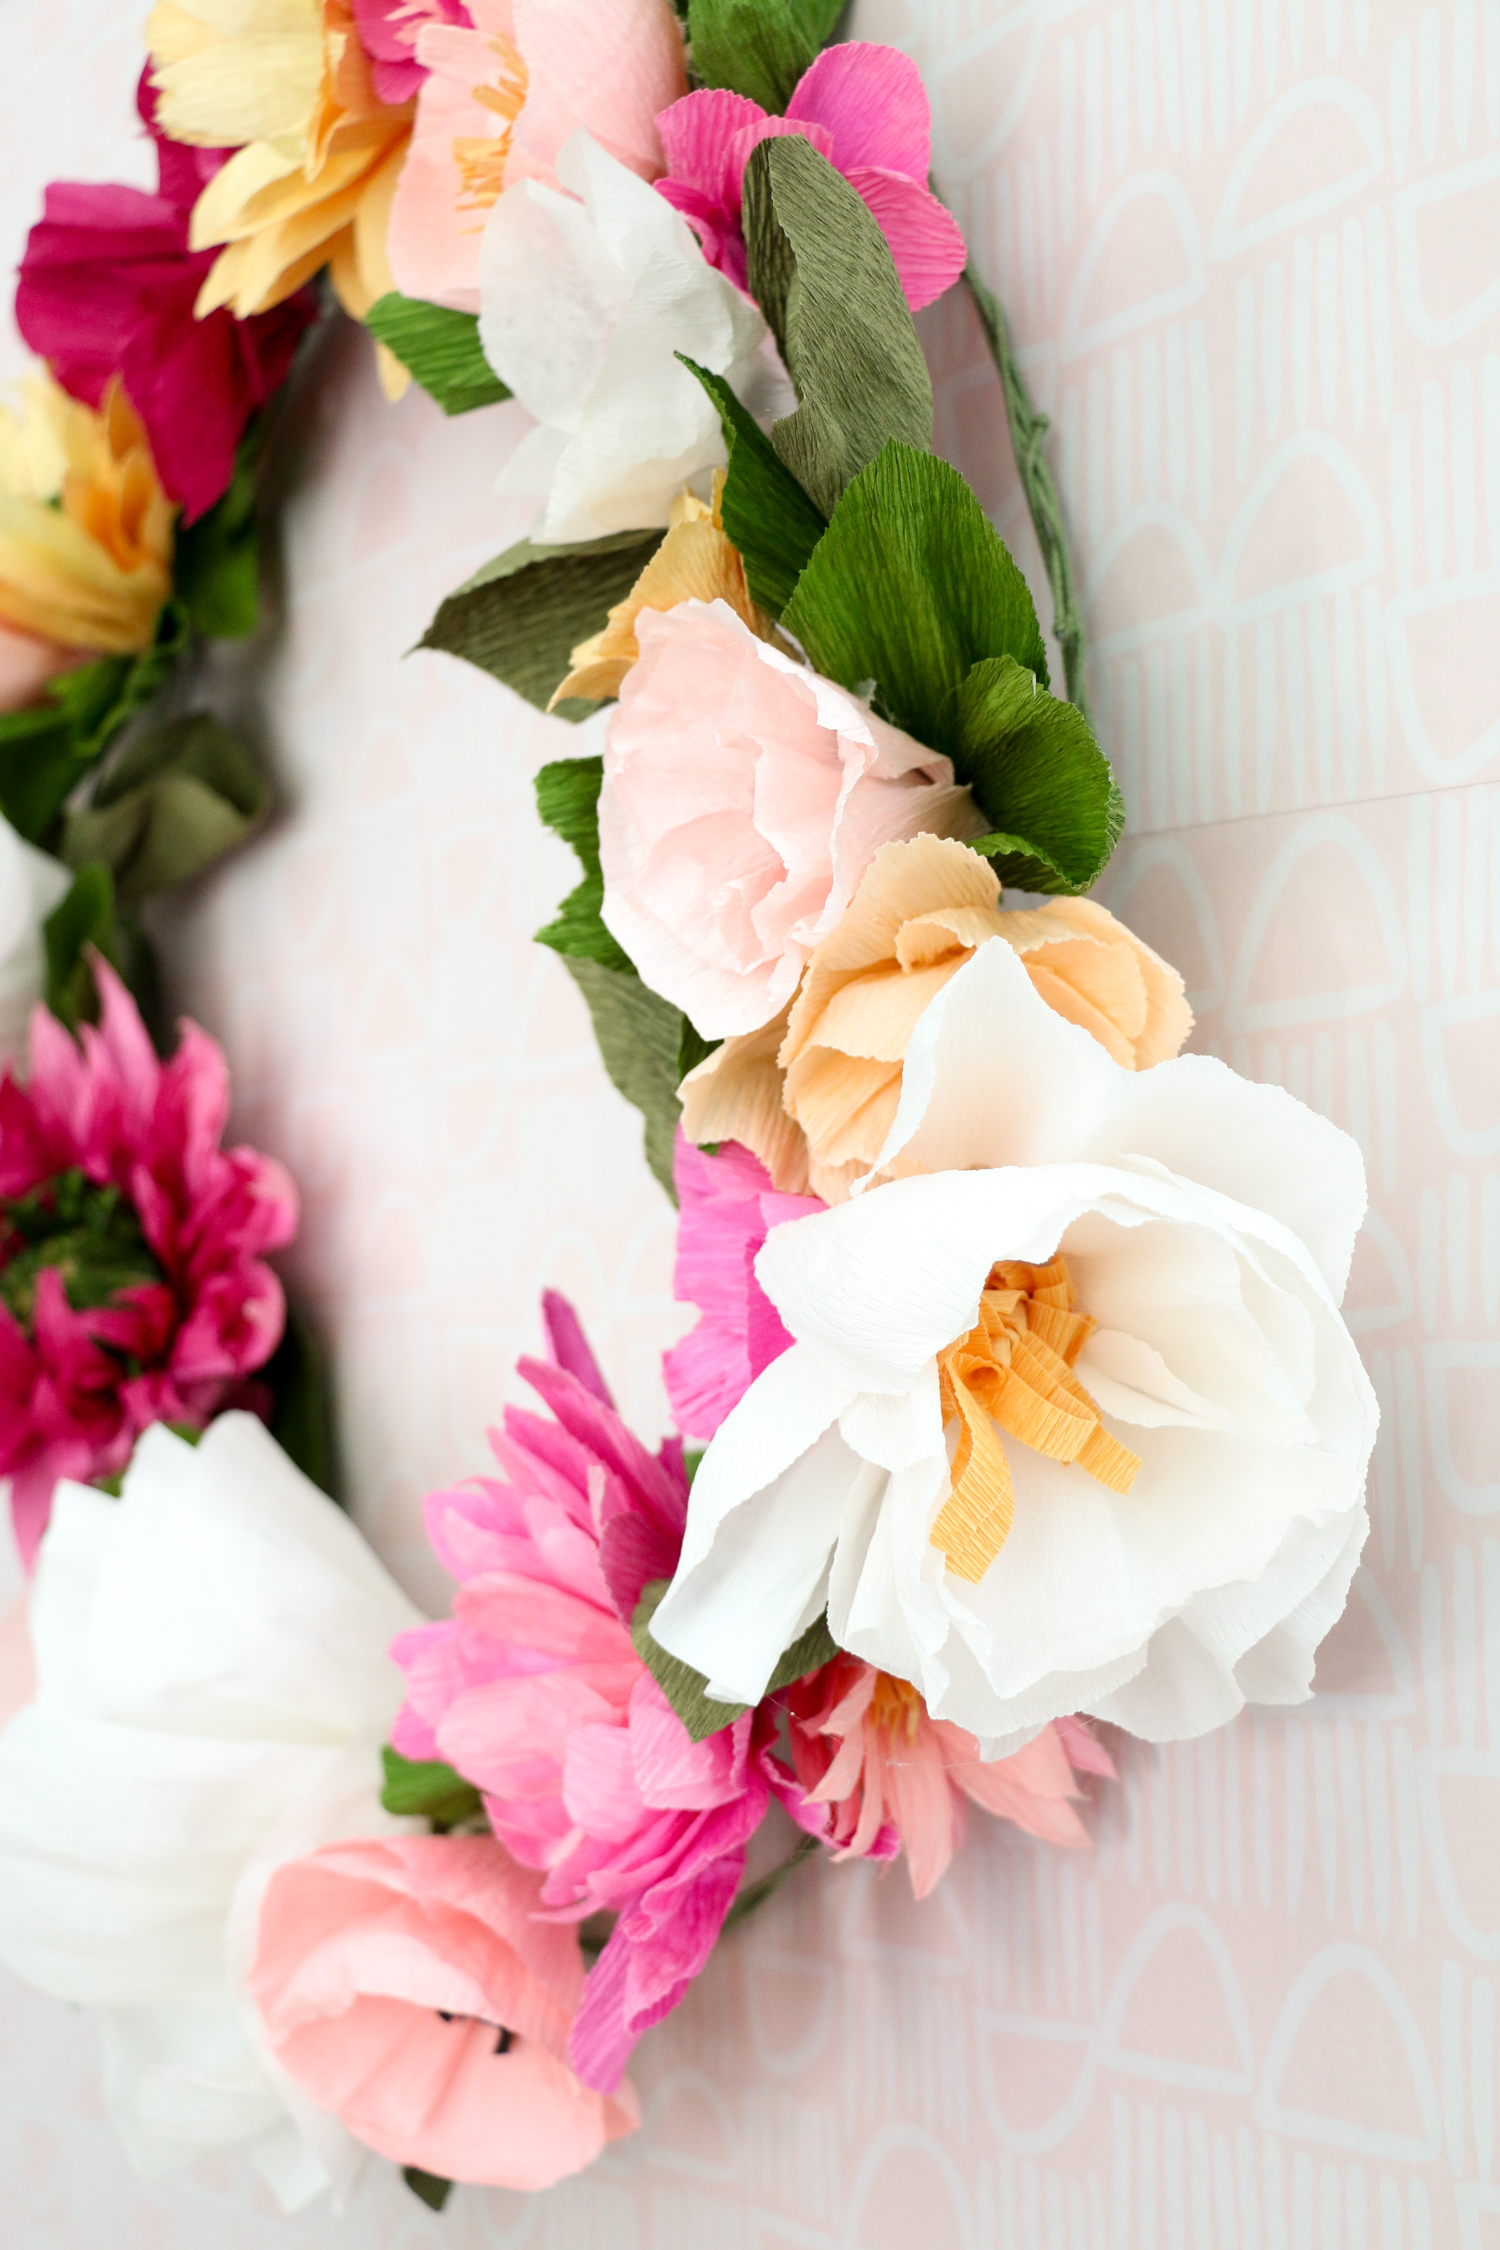 How to Make a Paper Flower Wreath